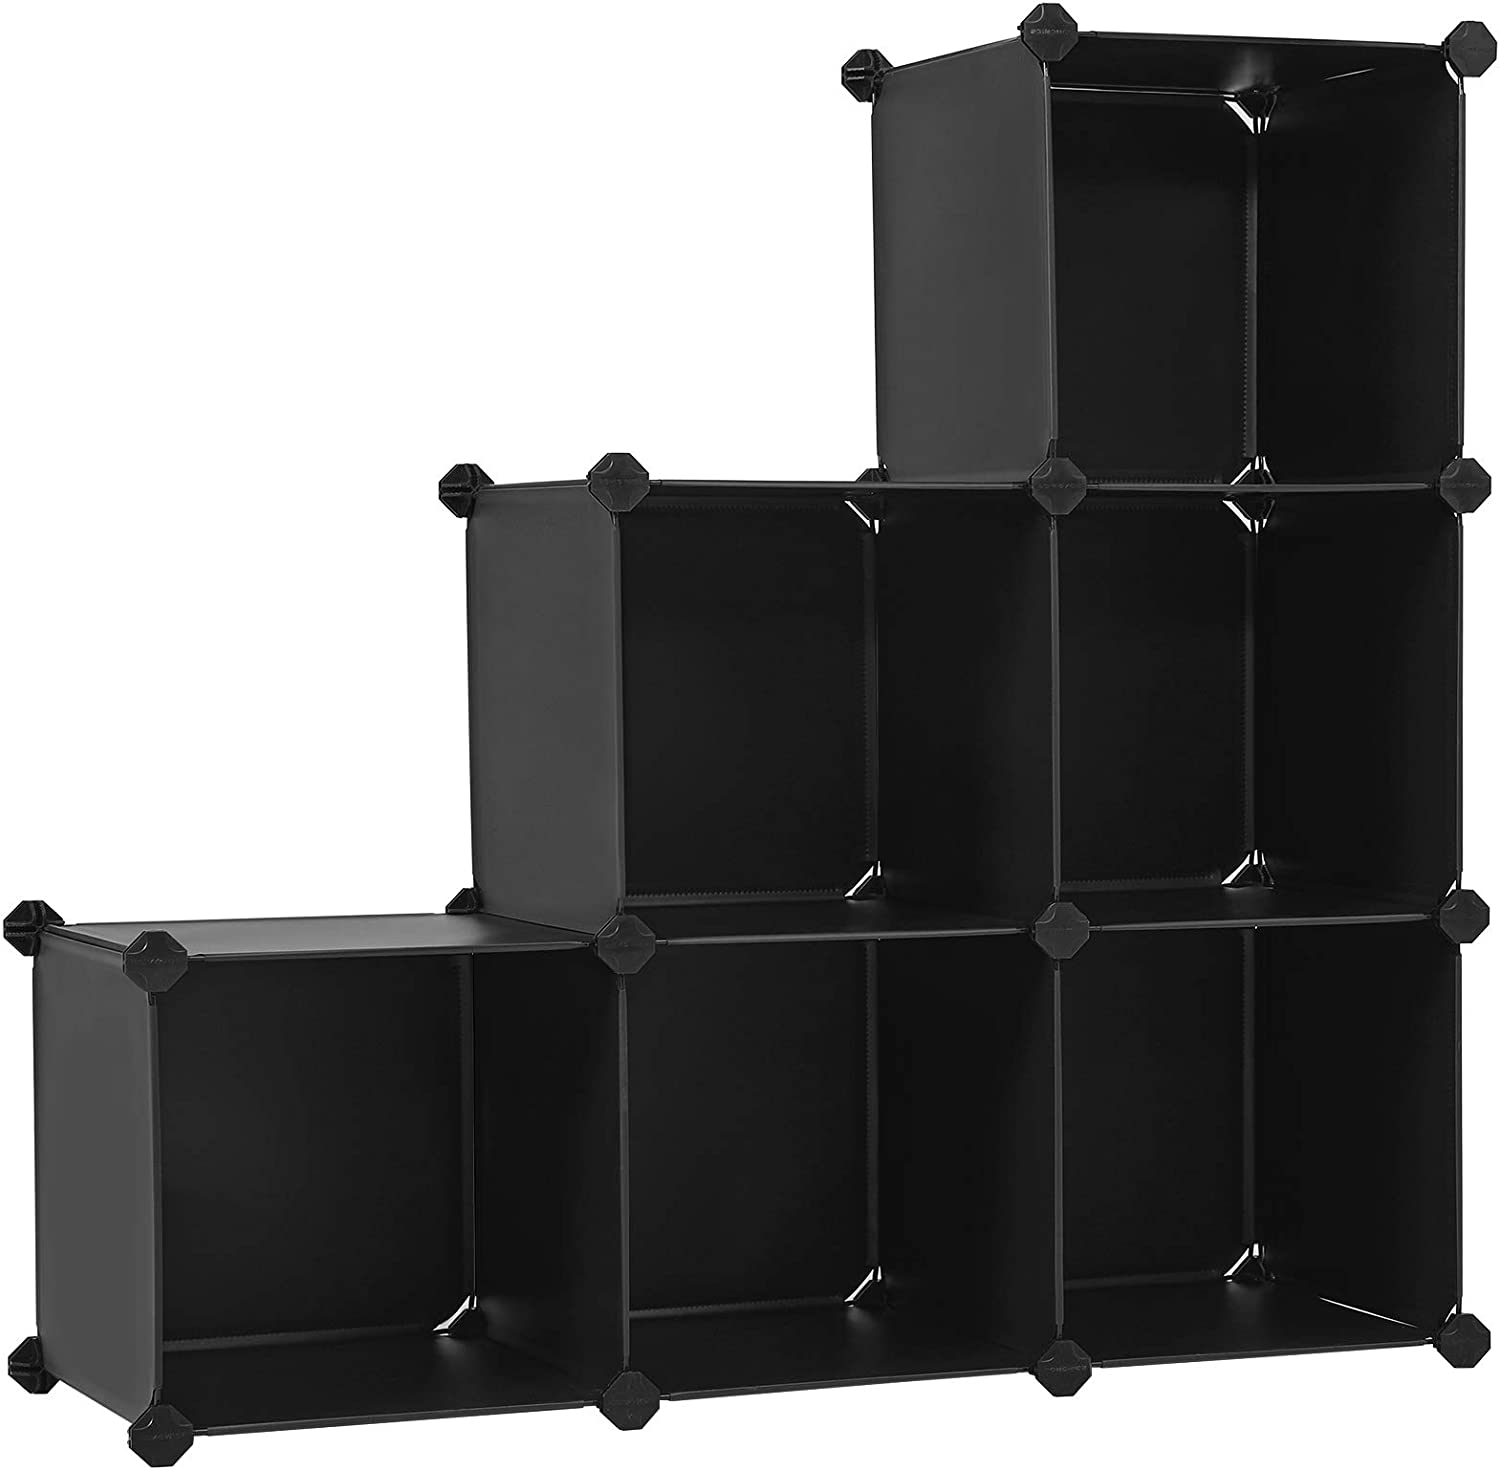 Amazon Com Songmics Cube Storage Organizer 6 Cube Closet Storage Shelves Diy Plastic Closet Cabinet Modular Bookcase Storage Shelving For Bedroom Living Room Office Black With Rubber Hammer Black Ulpc06h Home Kitchen